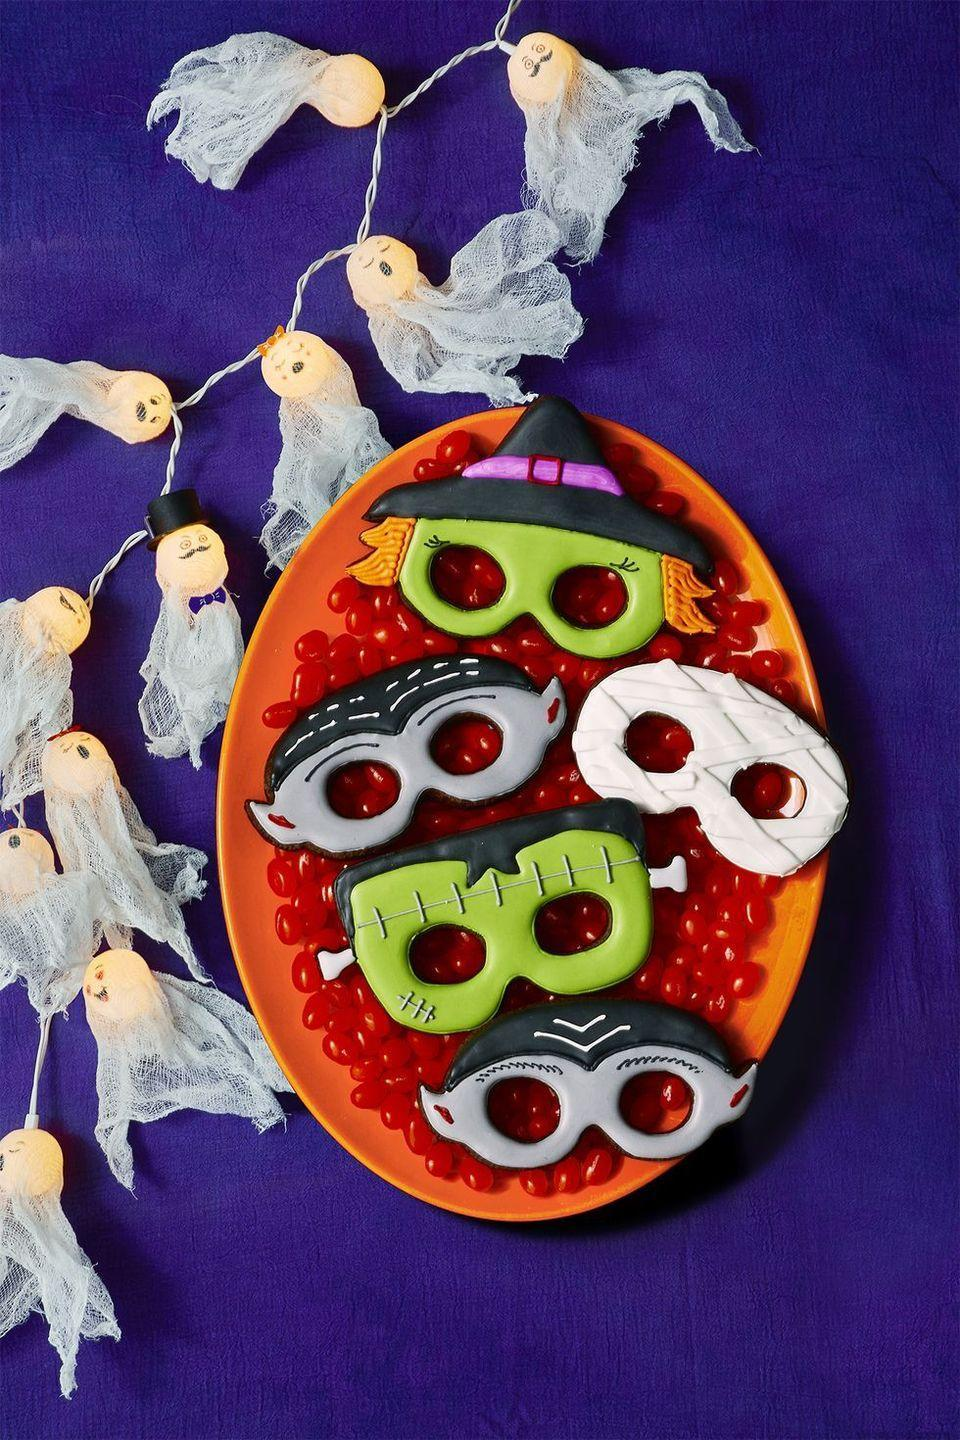 """<p>Cutest cookies ever? Just make a batch of sugar cookie dough, then use a <a href=""""https://members.easypeasyandfun.com/downloads/halloween-printable-masks/"""" rel=""""nofollow noopener"""" target=""""_blank"""" data-ylk=""""slk:mask template"""" class=""""link rapid-noclick-resp"""">mask template</a> to carve out the shape of a witch, vampire, mummy, and Frankenstein.</p><p><a href=""""https://www.womansday.com/food-recipes/food-drinks/recipes/a12008/basic-sugar-cookies-recipe-wdy1212/"""" rel=""""nofollow noopener"""" target=""""_blank"""" data-ylk=""""slk:Get the Basic Sugar Cookies recipe."""" class=""""link rapid-noclick-resp""""><strong><em>Get the Basic Sugar Cookies recipe.</em></strong></a></p>"""